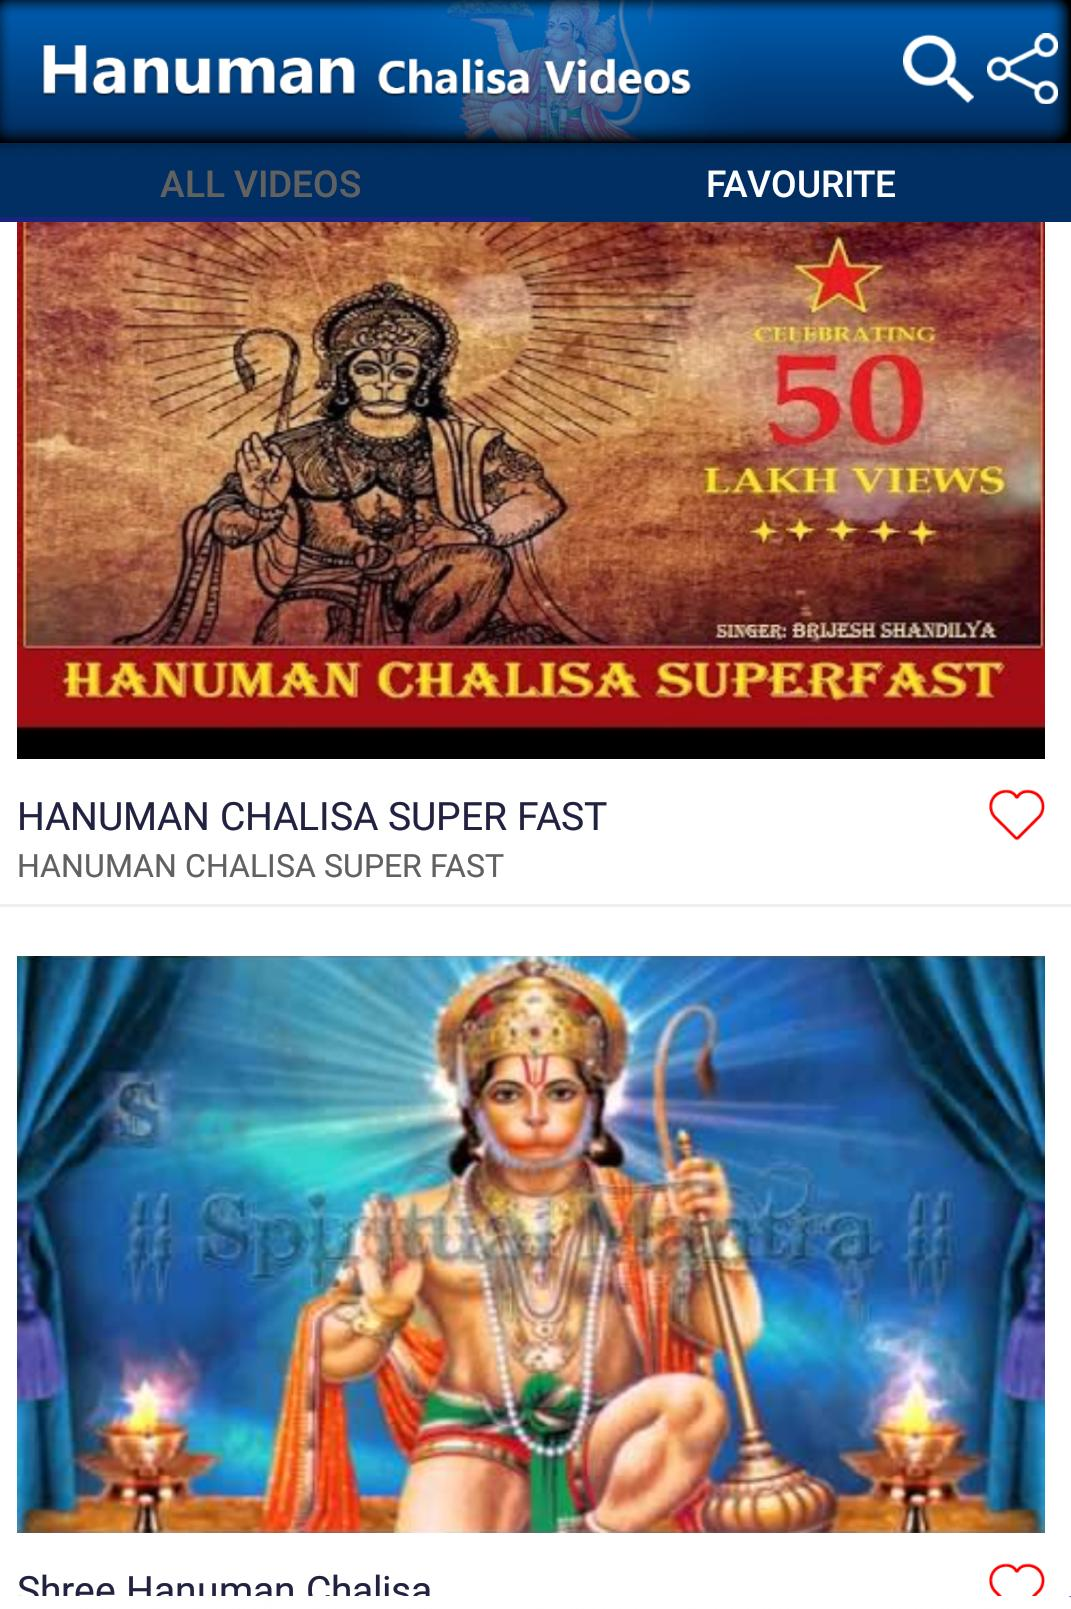 Hanuman Chalisa Videos for Android - APK Download